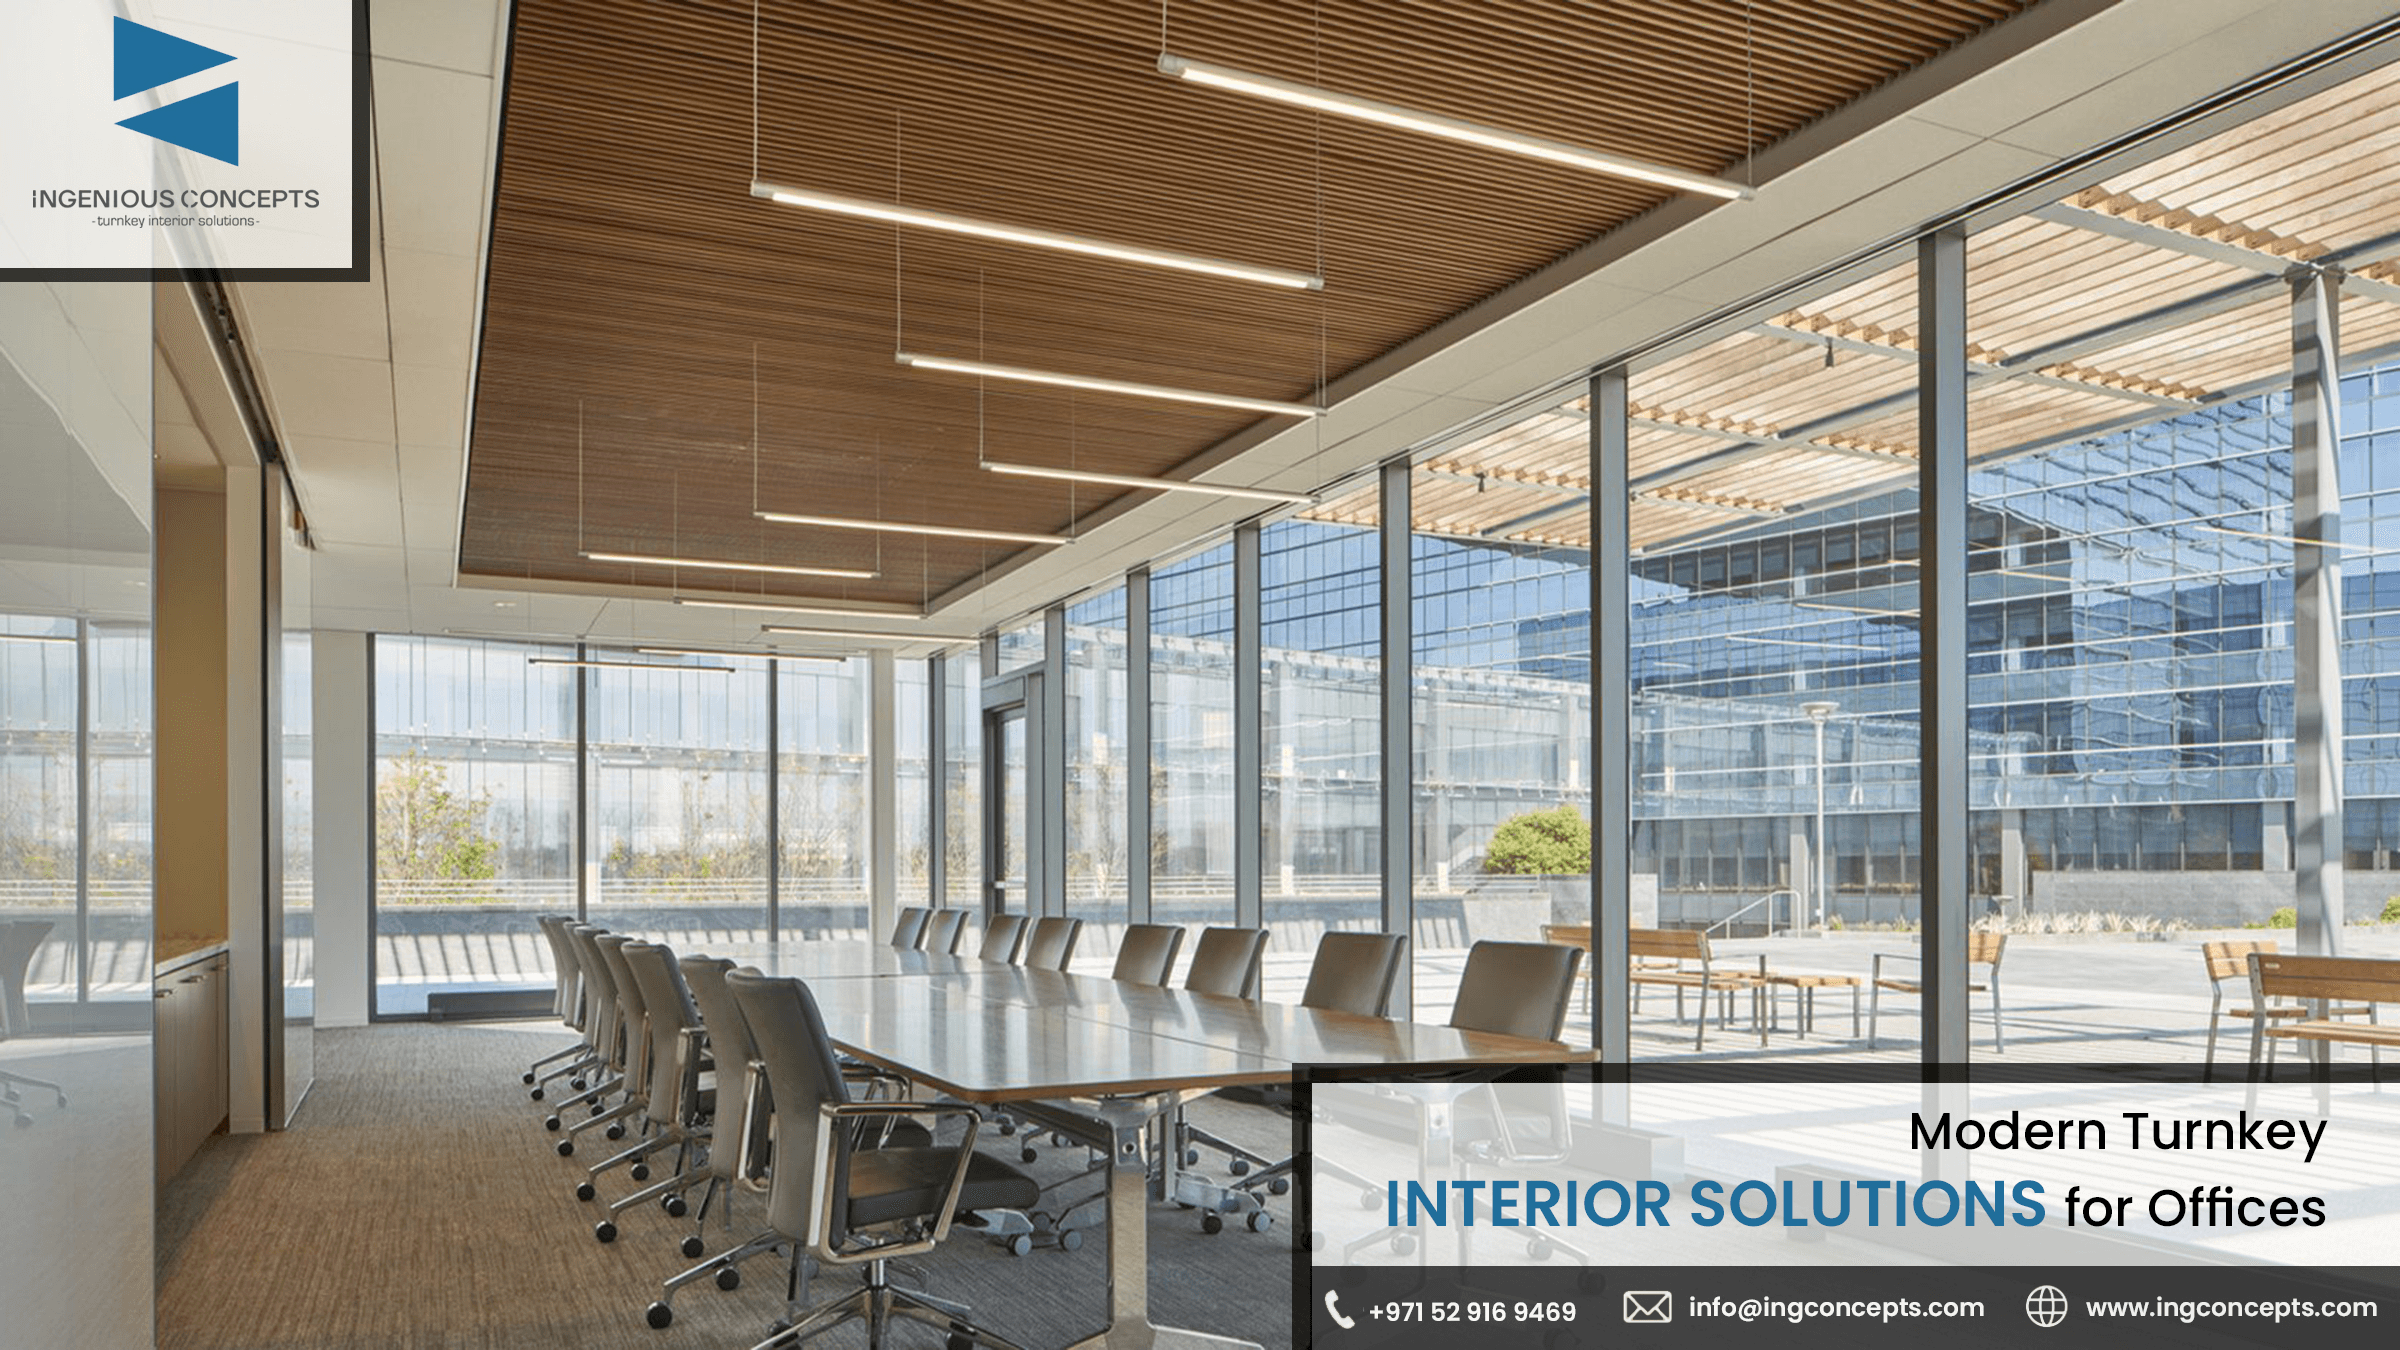 Modern Turnkey Interior Solutions for Offices in Dubai by